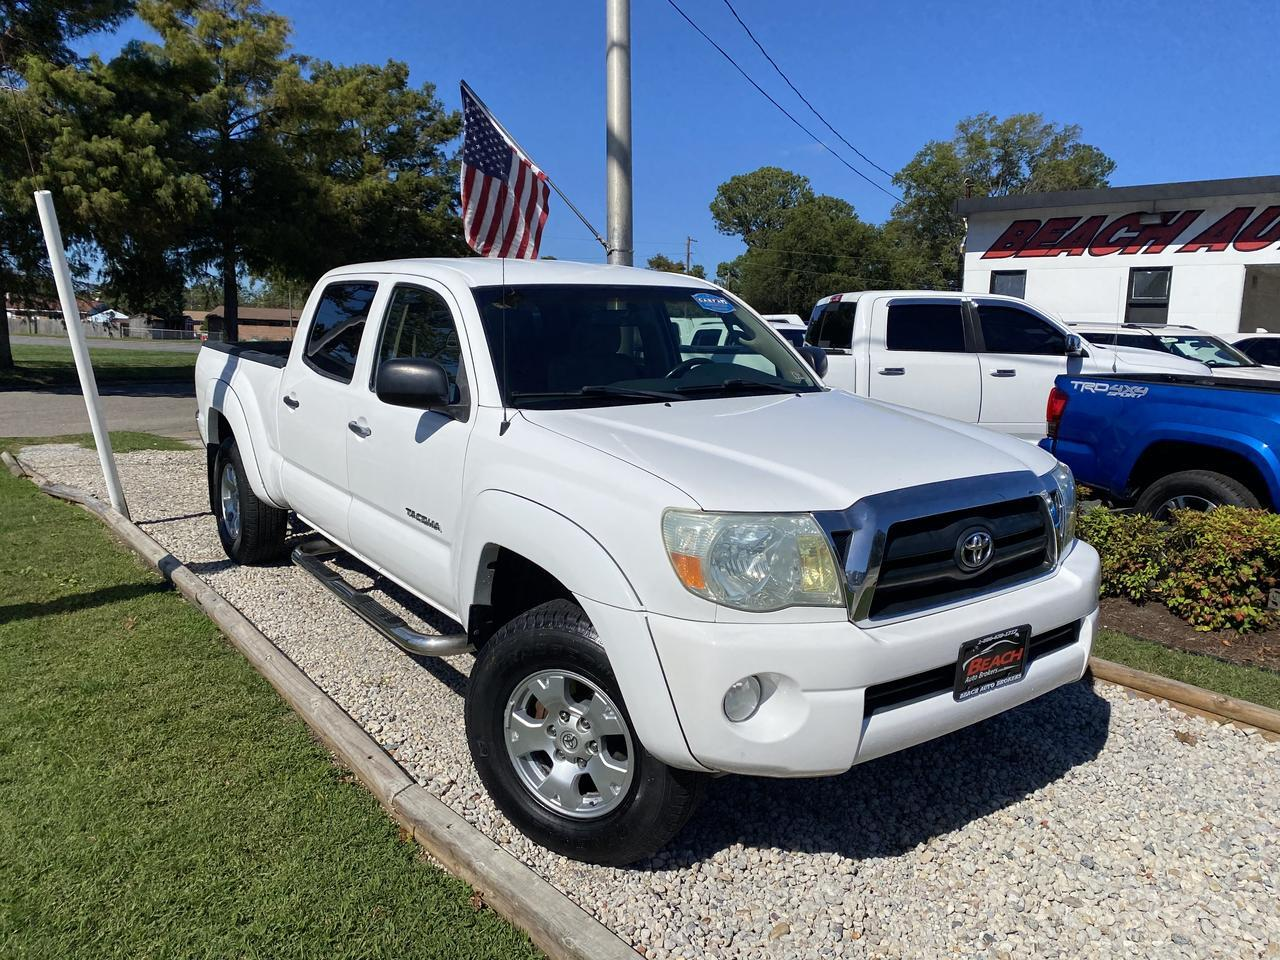 2006 TOYOTA TACOMA SR5 DOUBLE CAB 4X4, WARRANTY, AUX/USB PORT, A/C, CRUISE CONTROL, RUNNING BOARDS, CLEAN CARFAX! Norfolk VA